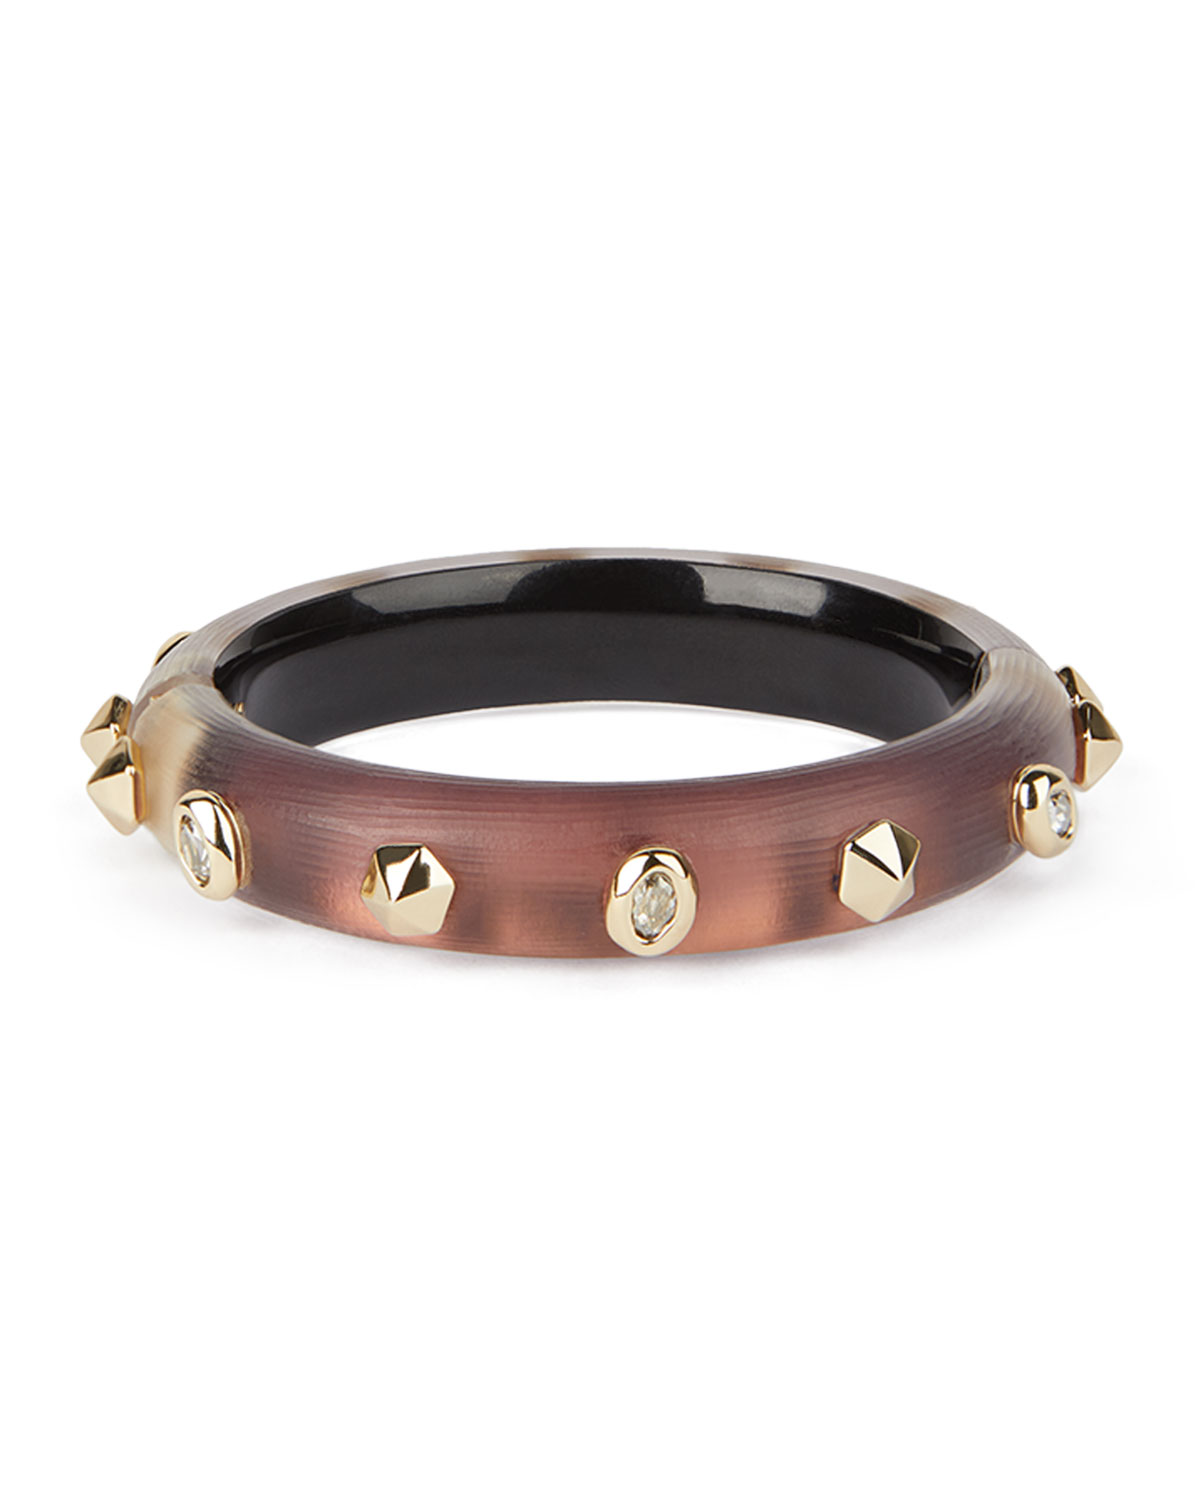 Alexis Bittar Stone Studded Small Hinge Bracelet, Metallic Red